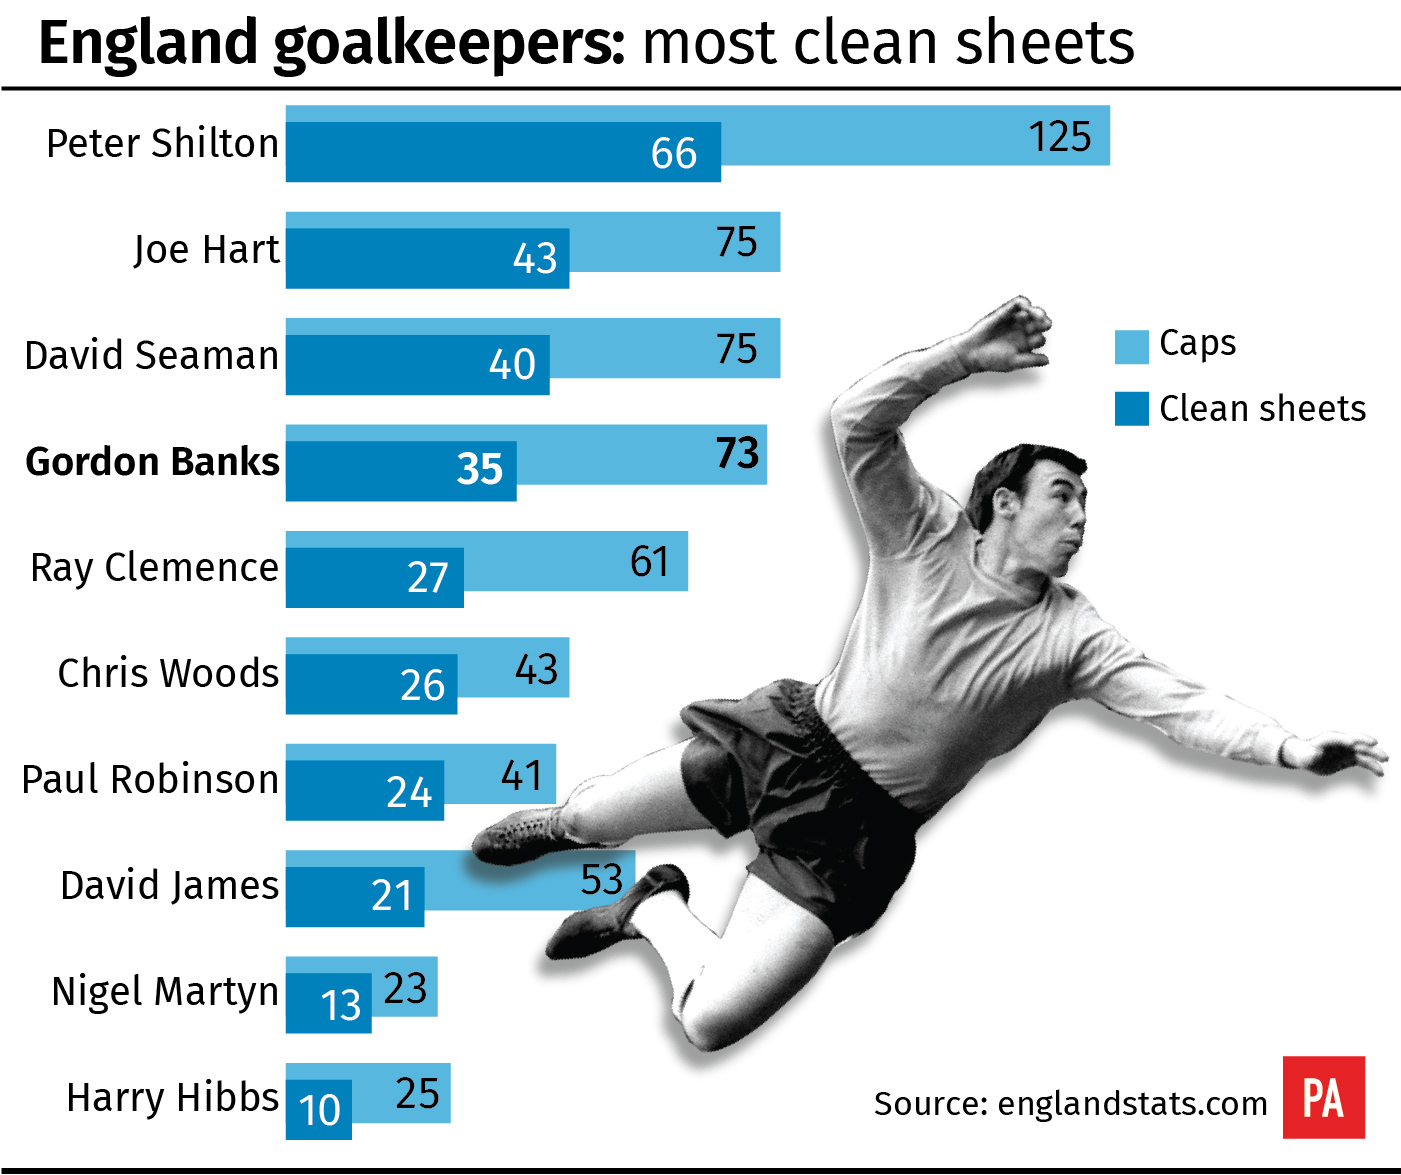 England goalkeepers: Most clean sheets